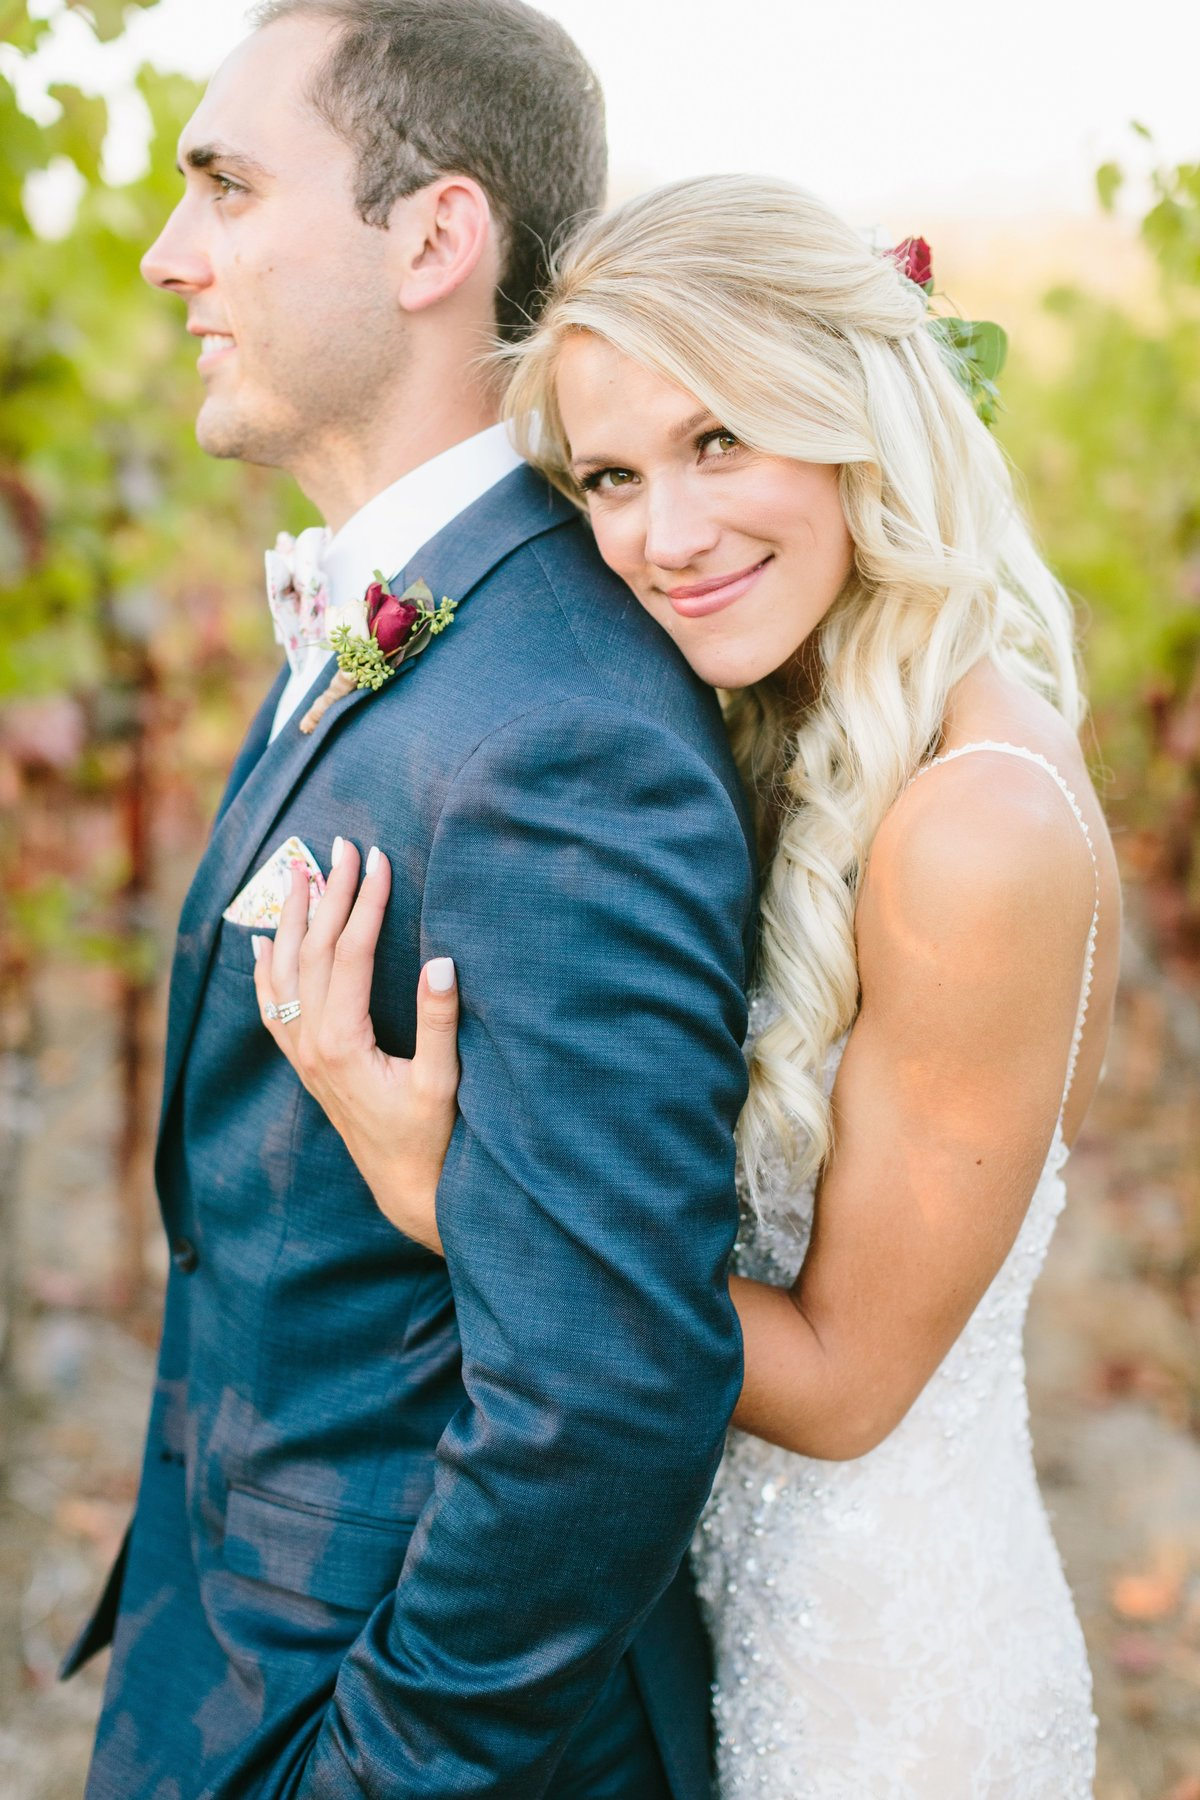 Wedding Photos-Jodee Debes Photography-194